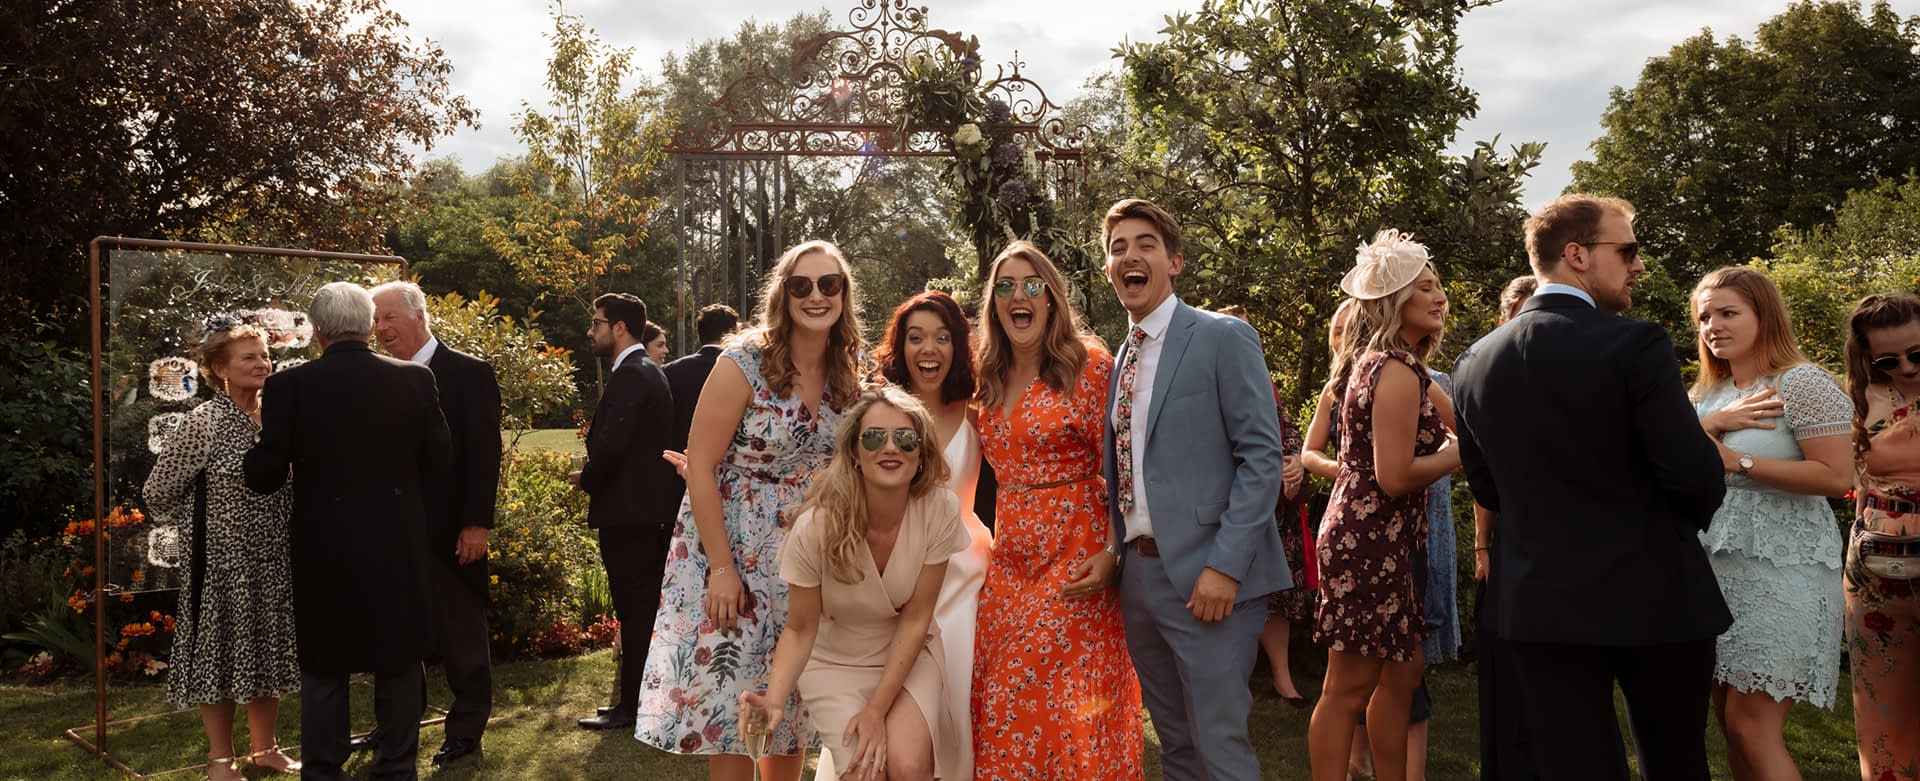 7 Things Your Wedding Guests Won't Notice